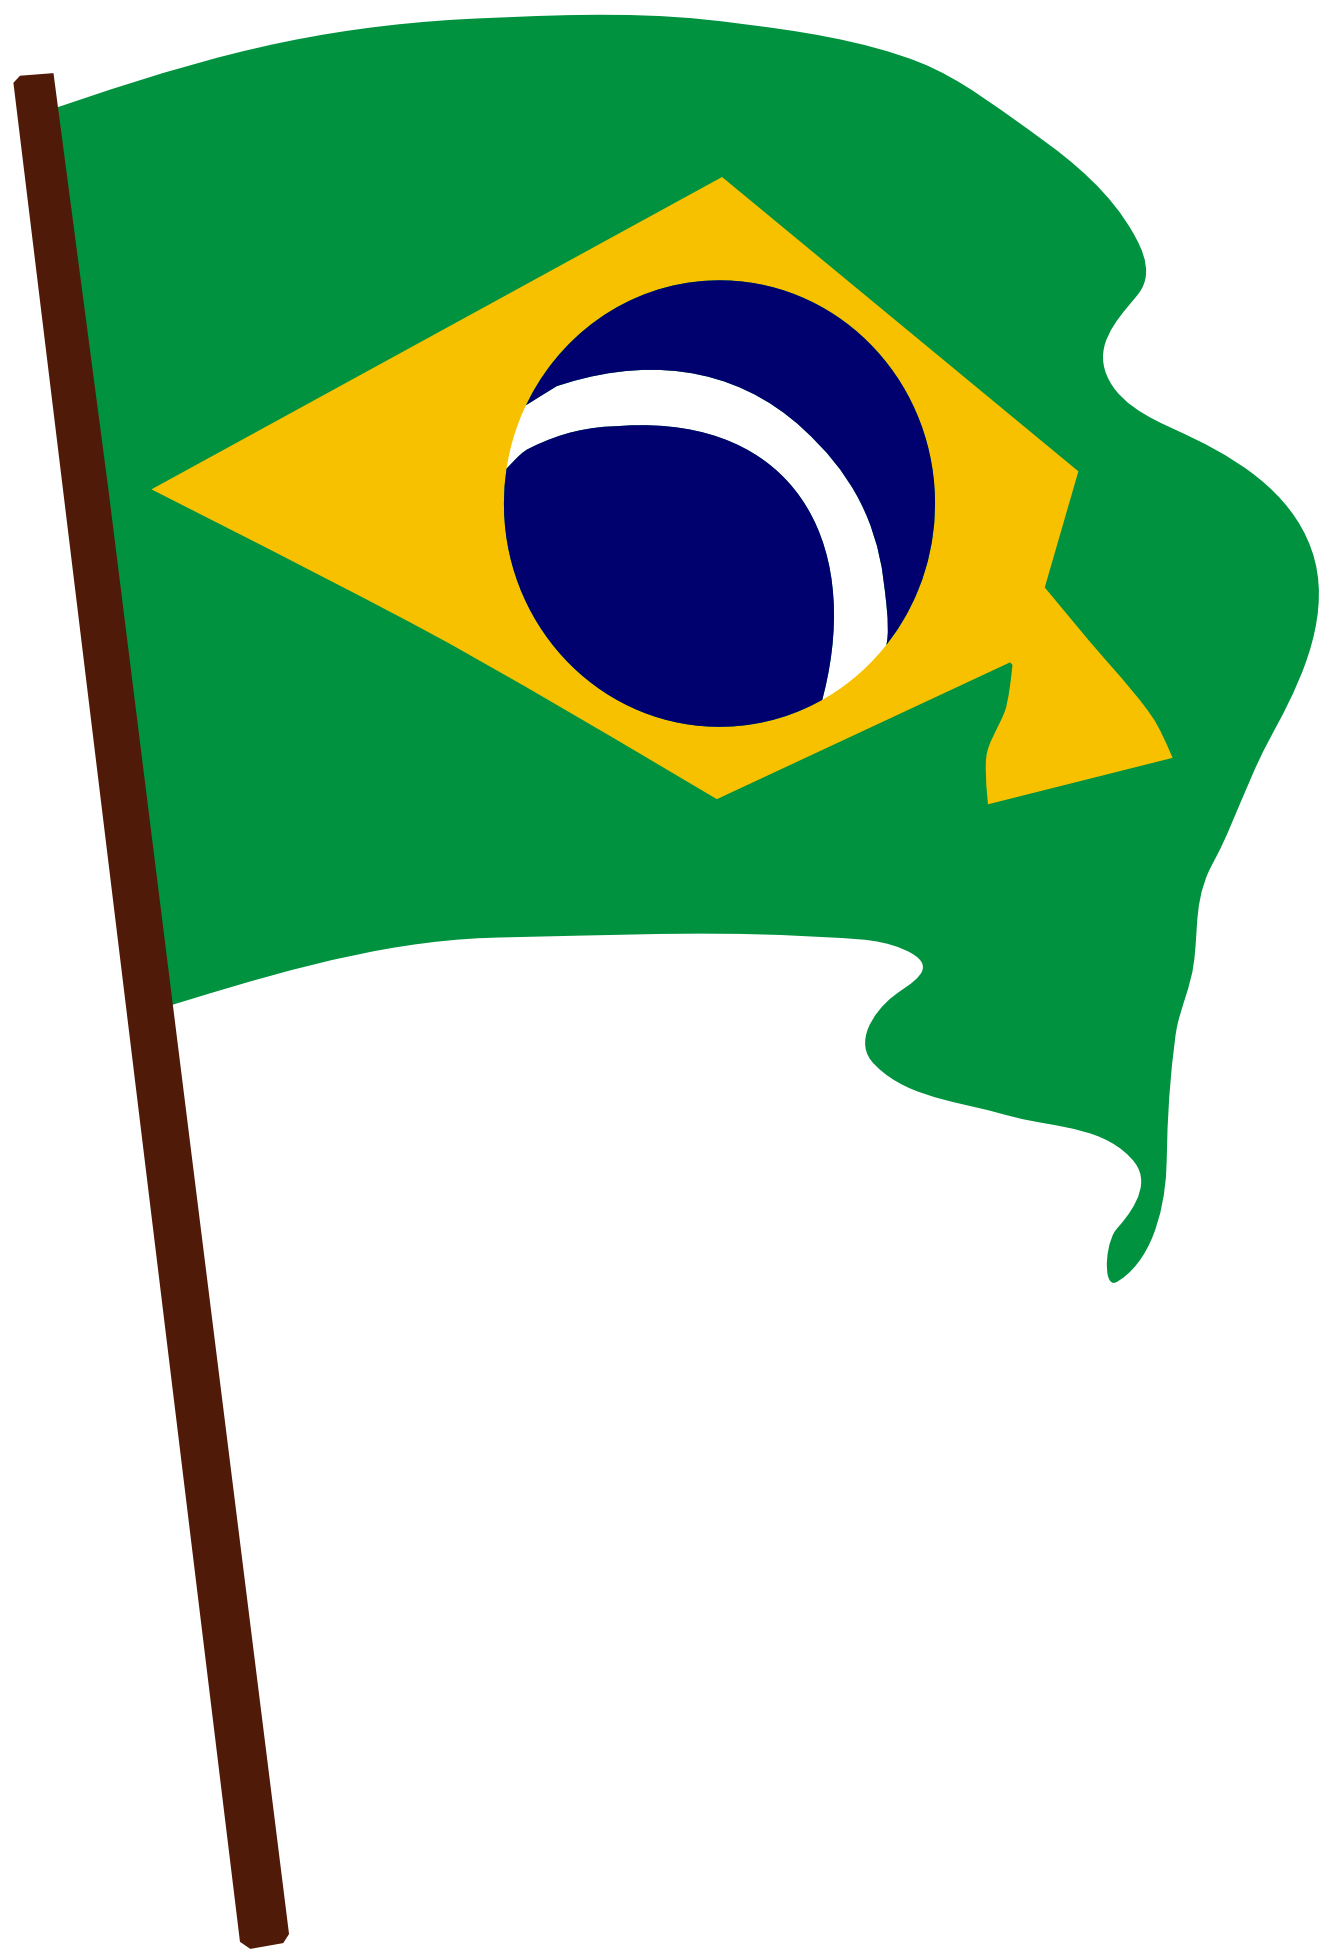 Flags clipart team. Brazil flag vector free